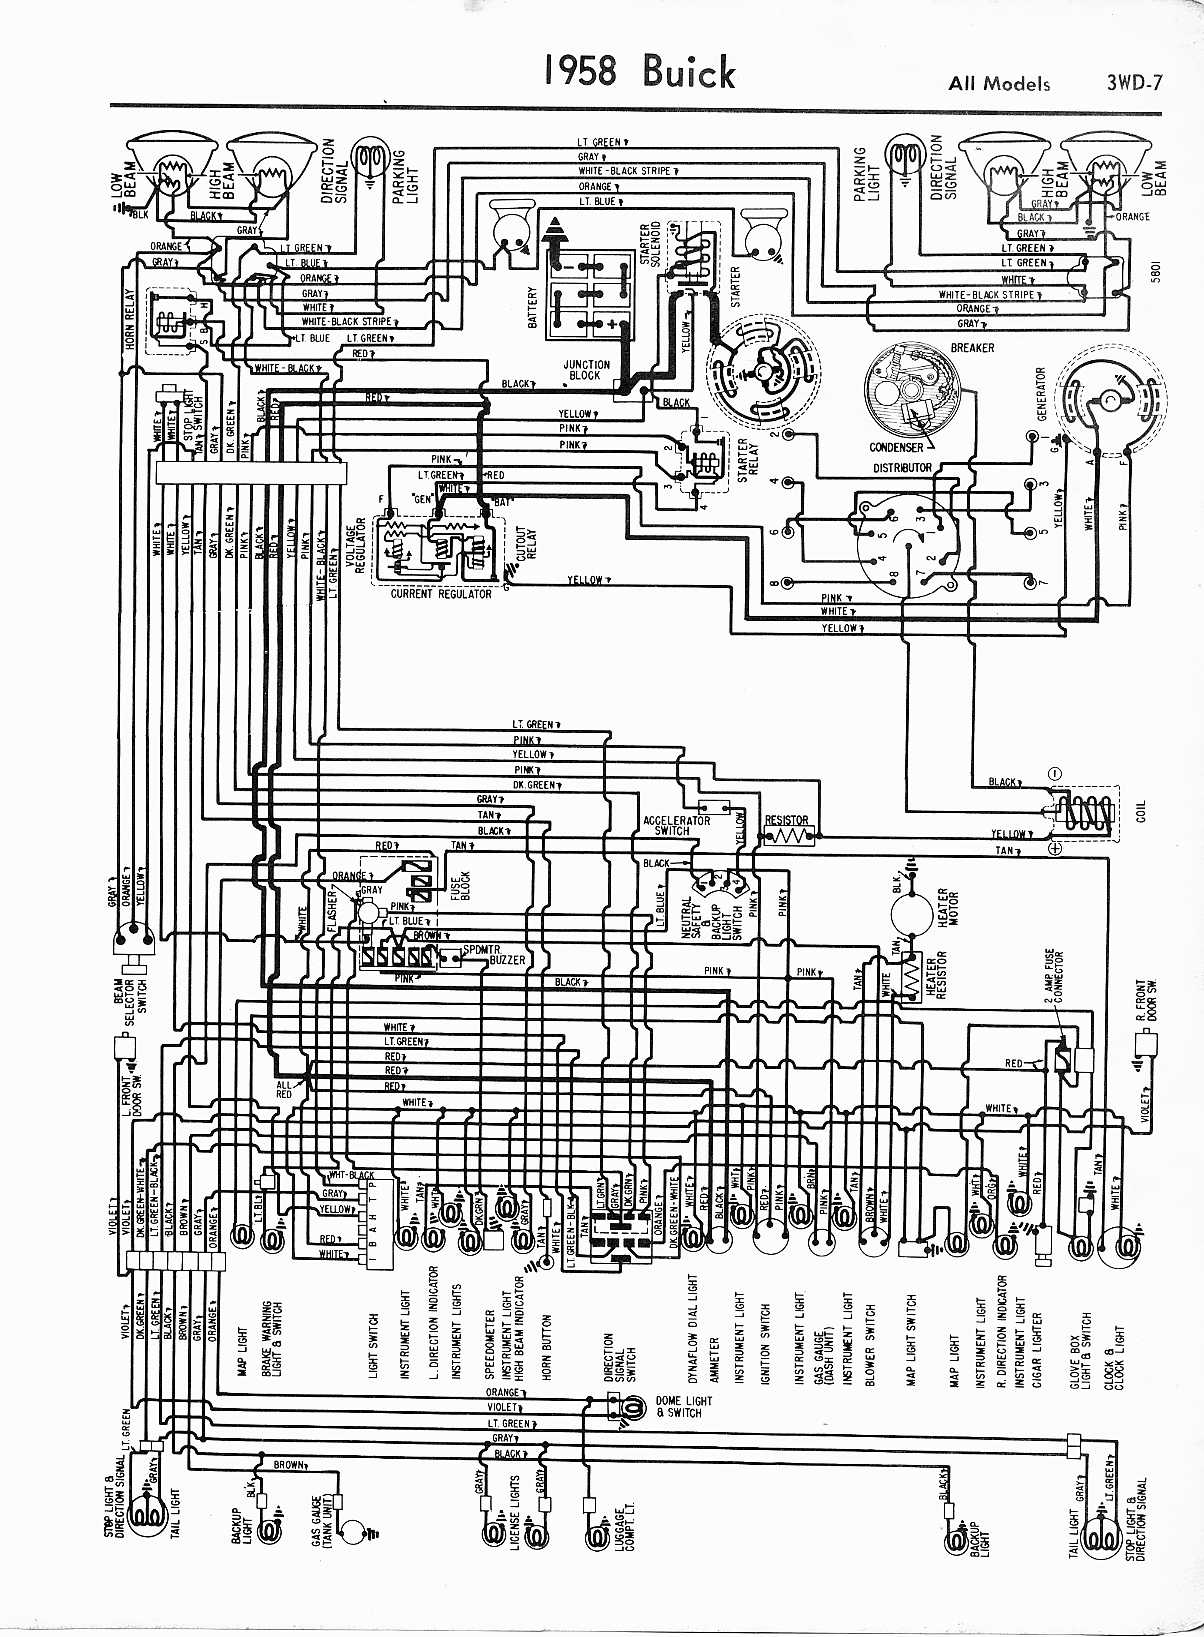 1957 buick wiring diagram 1957 wiring diagrams online 1958 all models 1957 buick wiring diagrams